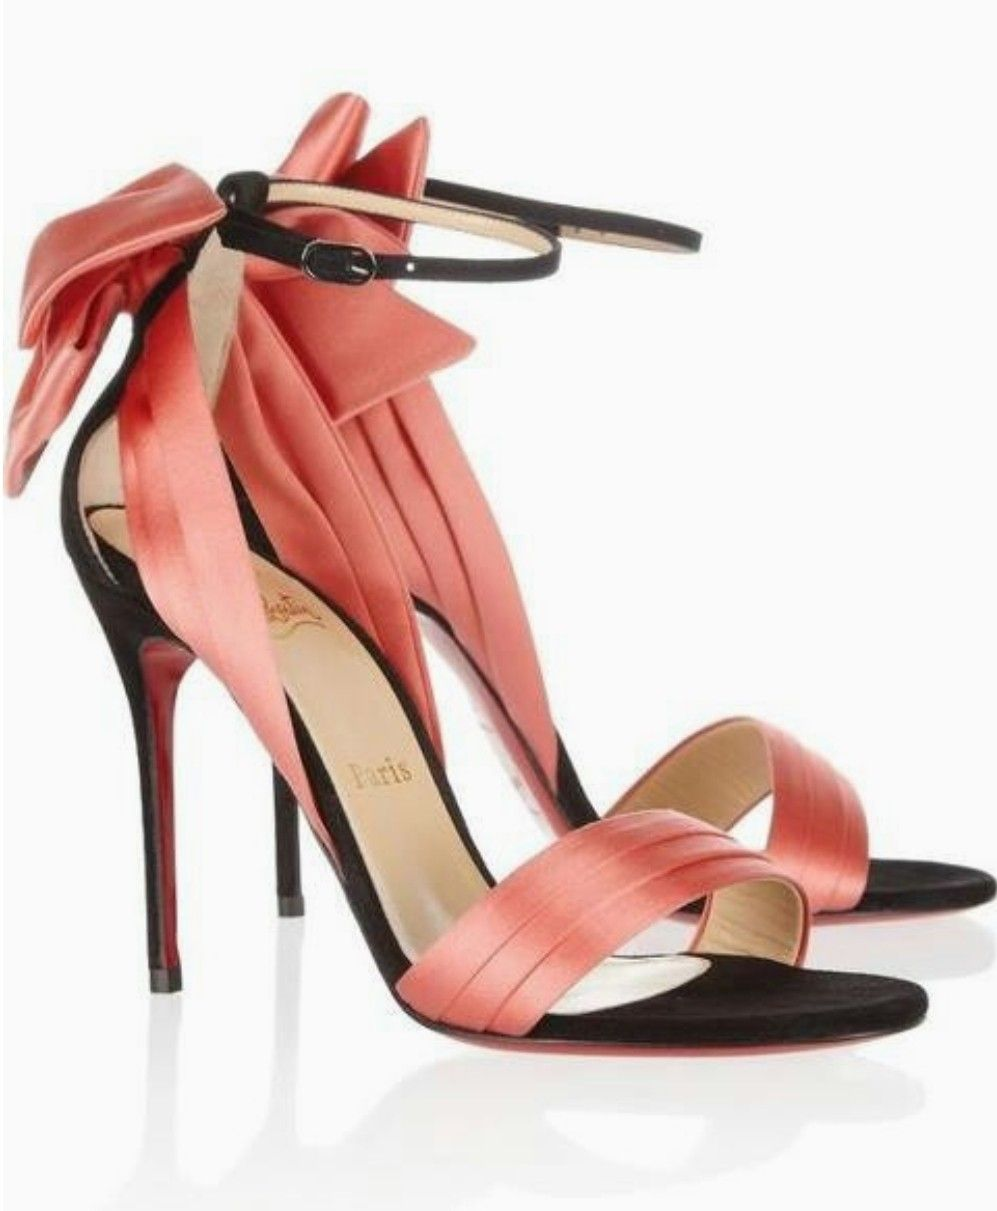 cc32eaaee0db Shop Women s Christian Louboutin Sandal heels on Lyst. Track over 2408 Christian  Louboutin Sandal heels for stock and sale updates.